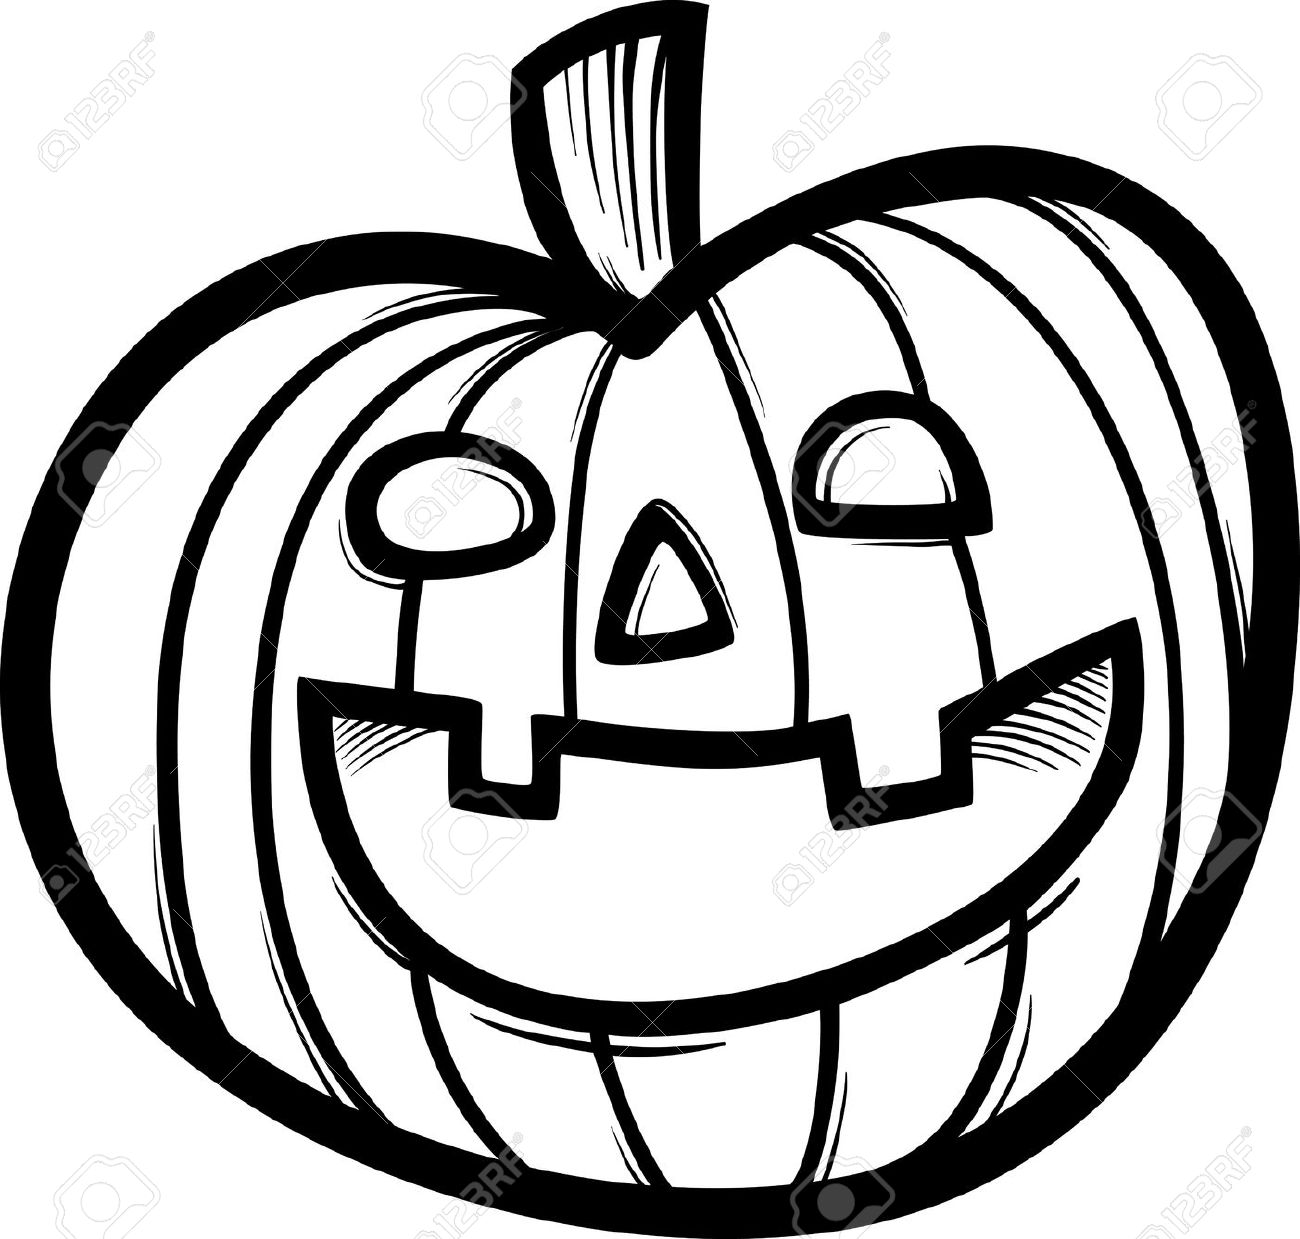 1300x1239 Pumpkin Black And White Pumpkin Black And White Pumpkin Clipart 1